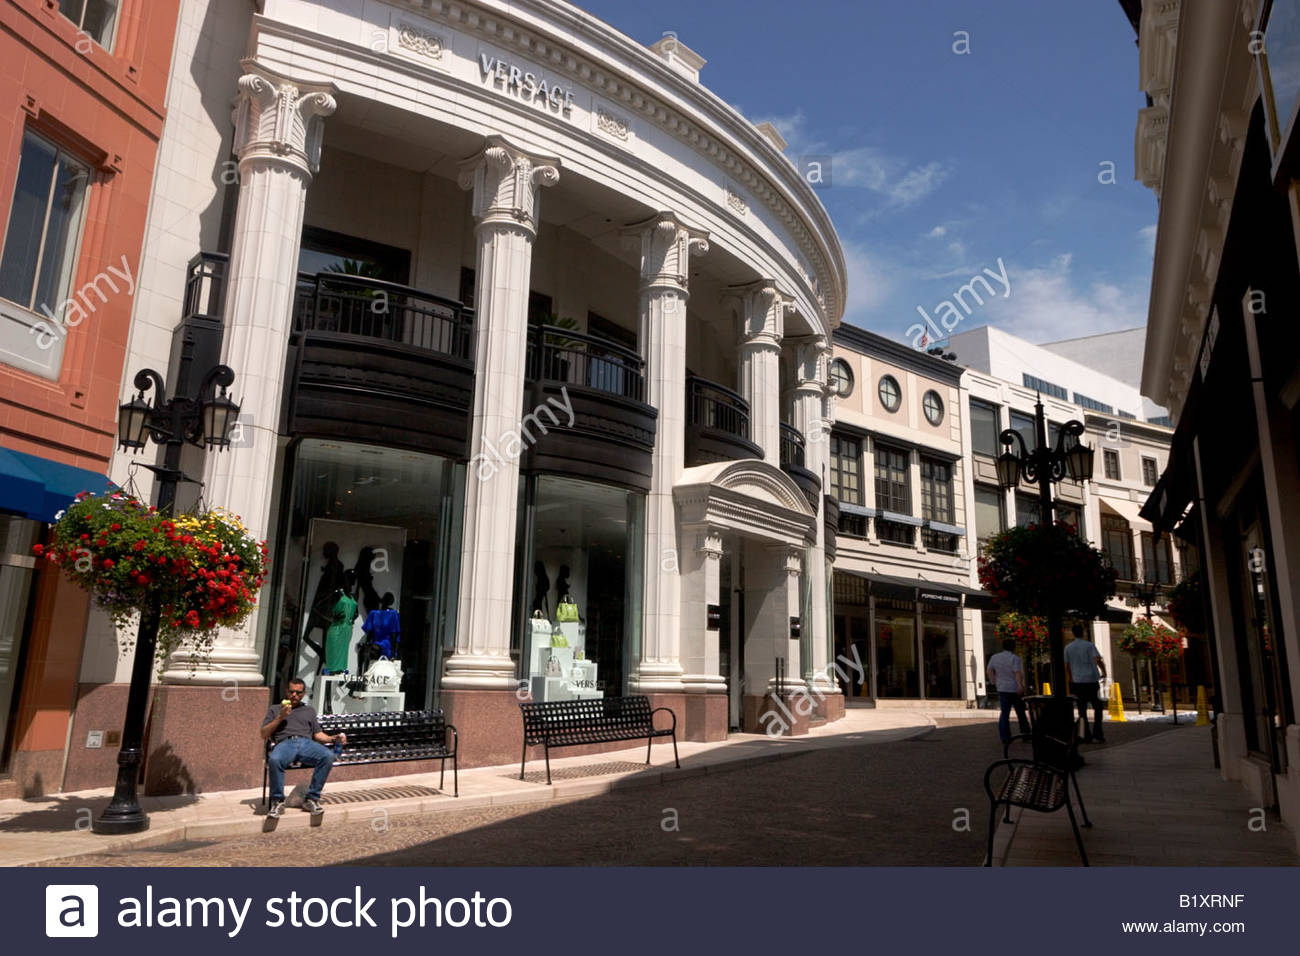 195345212573 Versace Store at Rodeo Drive Beverly Hills California Stock Photo ...